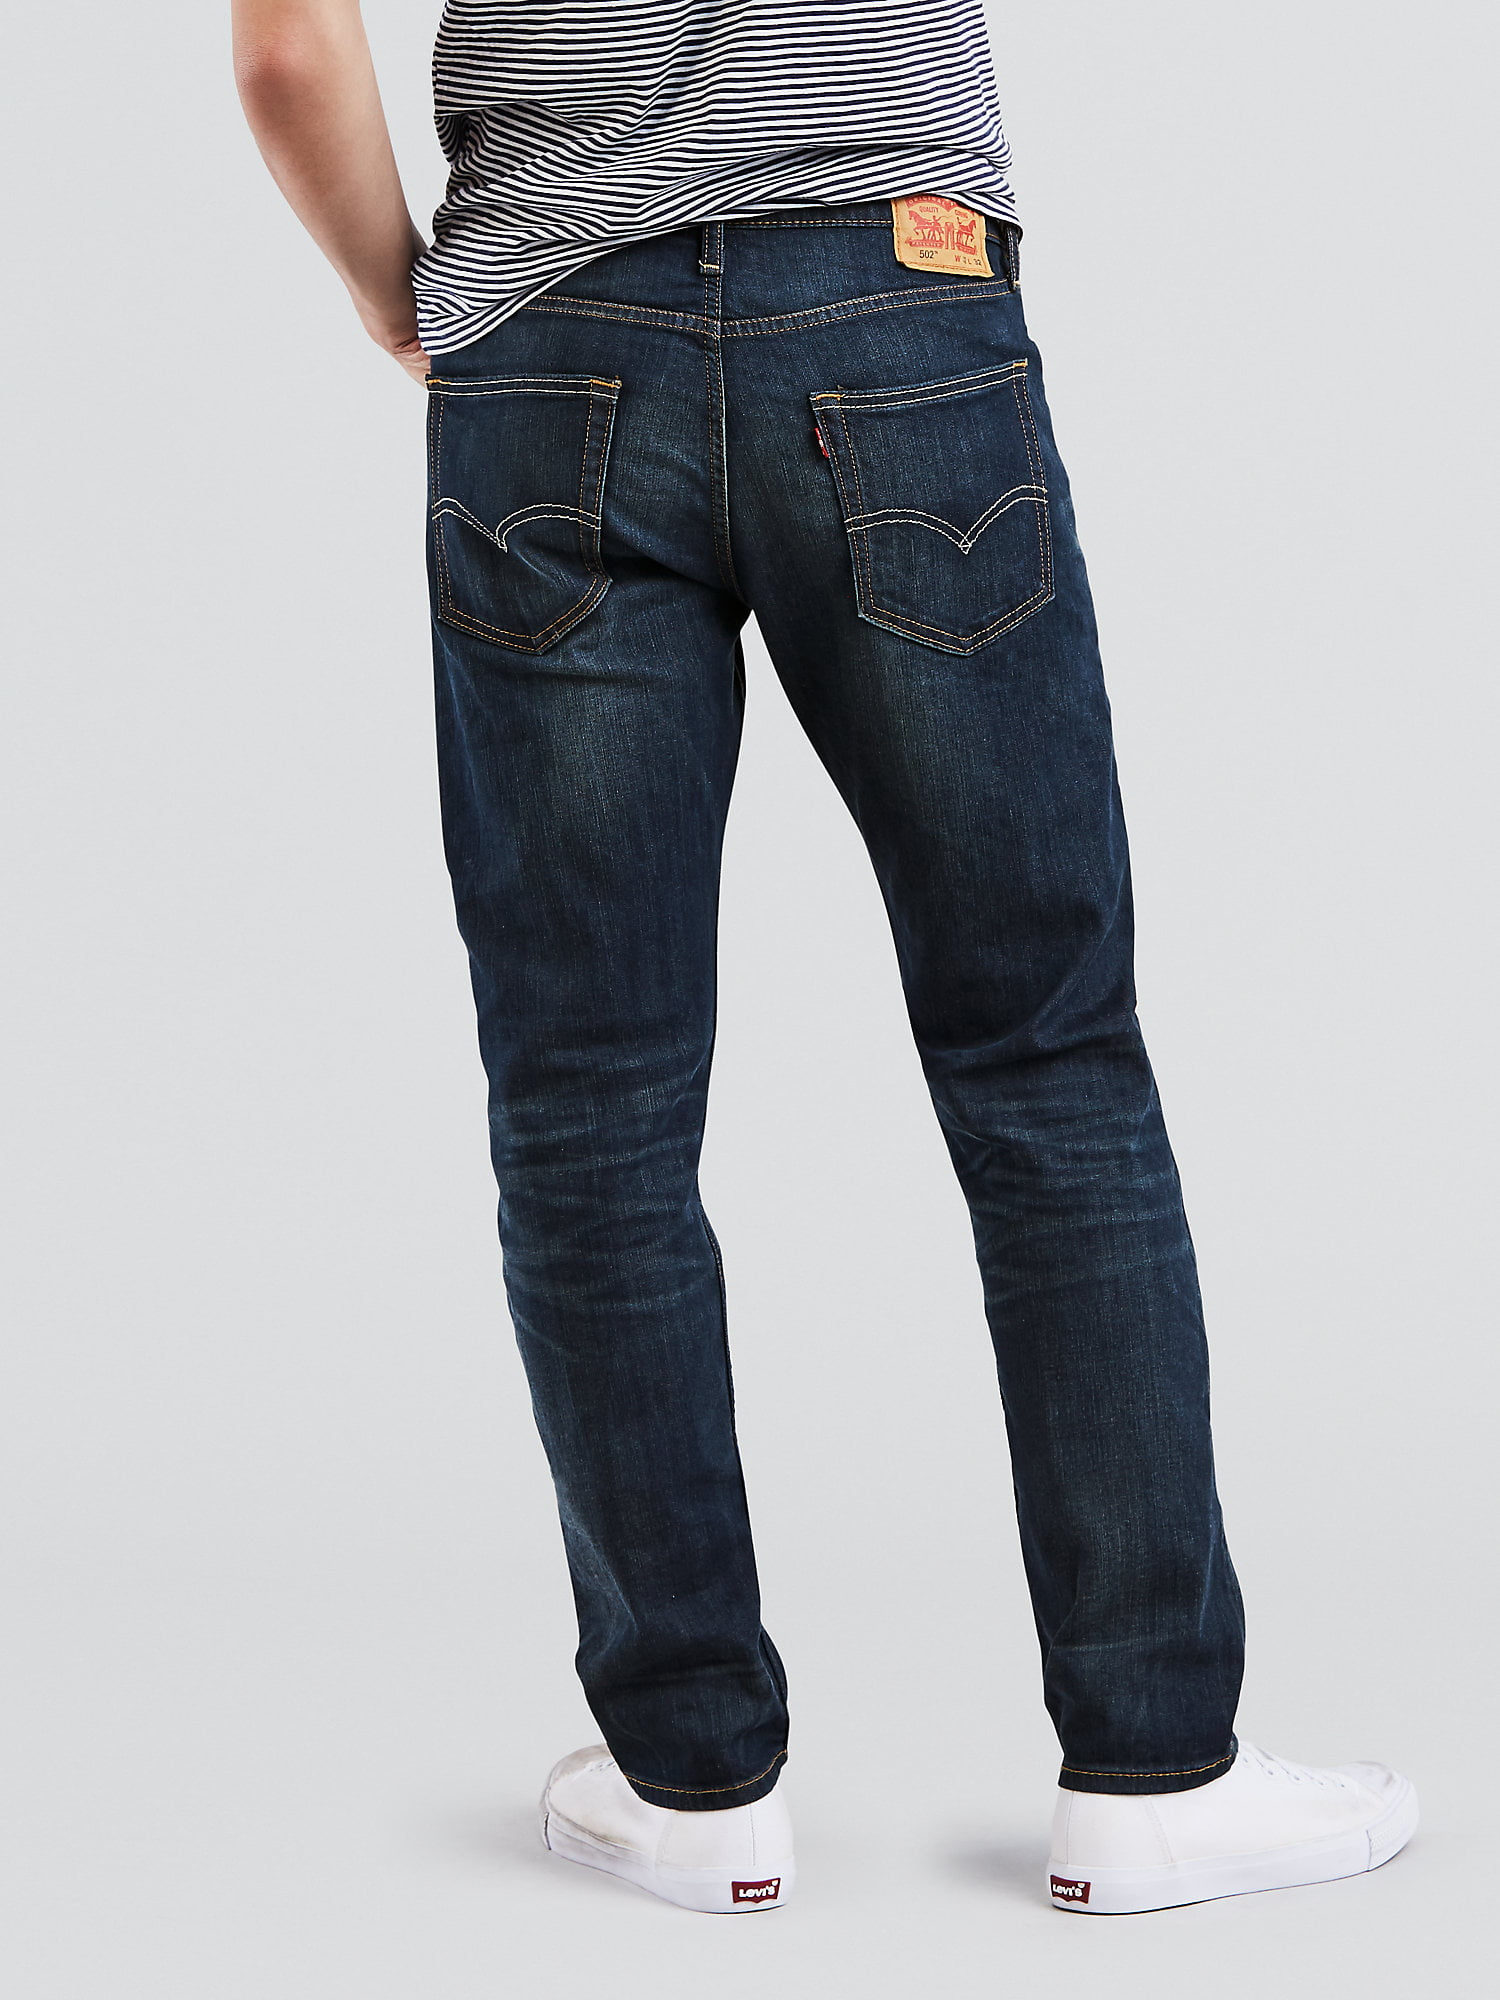 b457c40e948 Levi's - Levi's Men's 502 Regular Tapered Jeans - Walmart.com